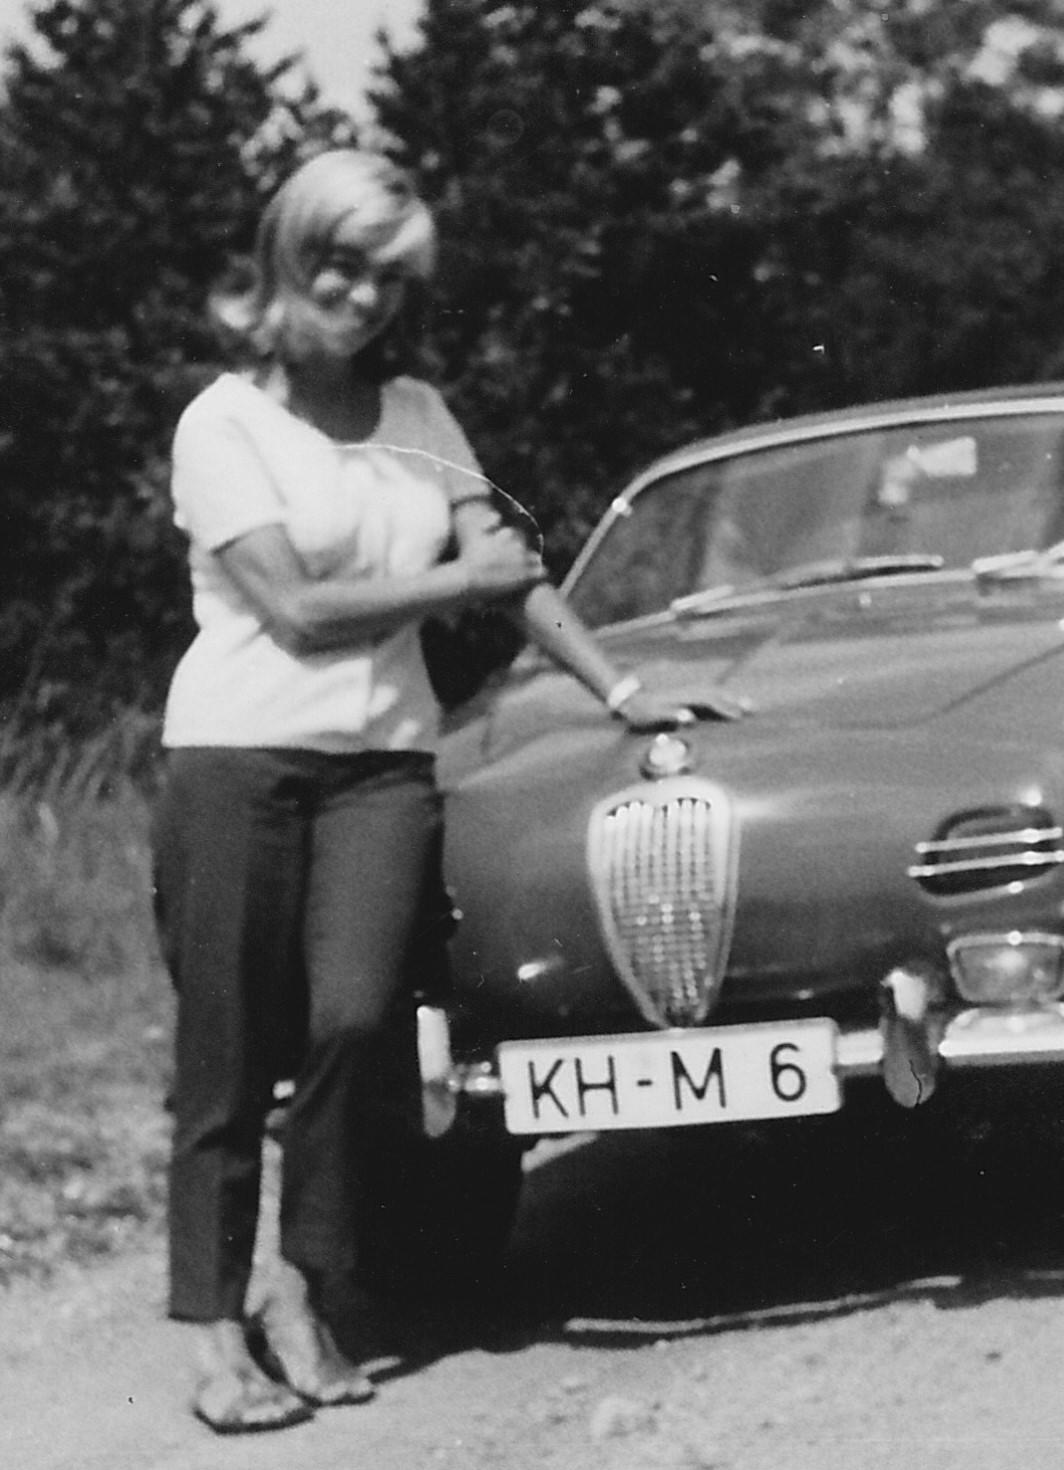 Chris Hauf Karmann 1968